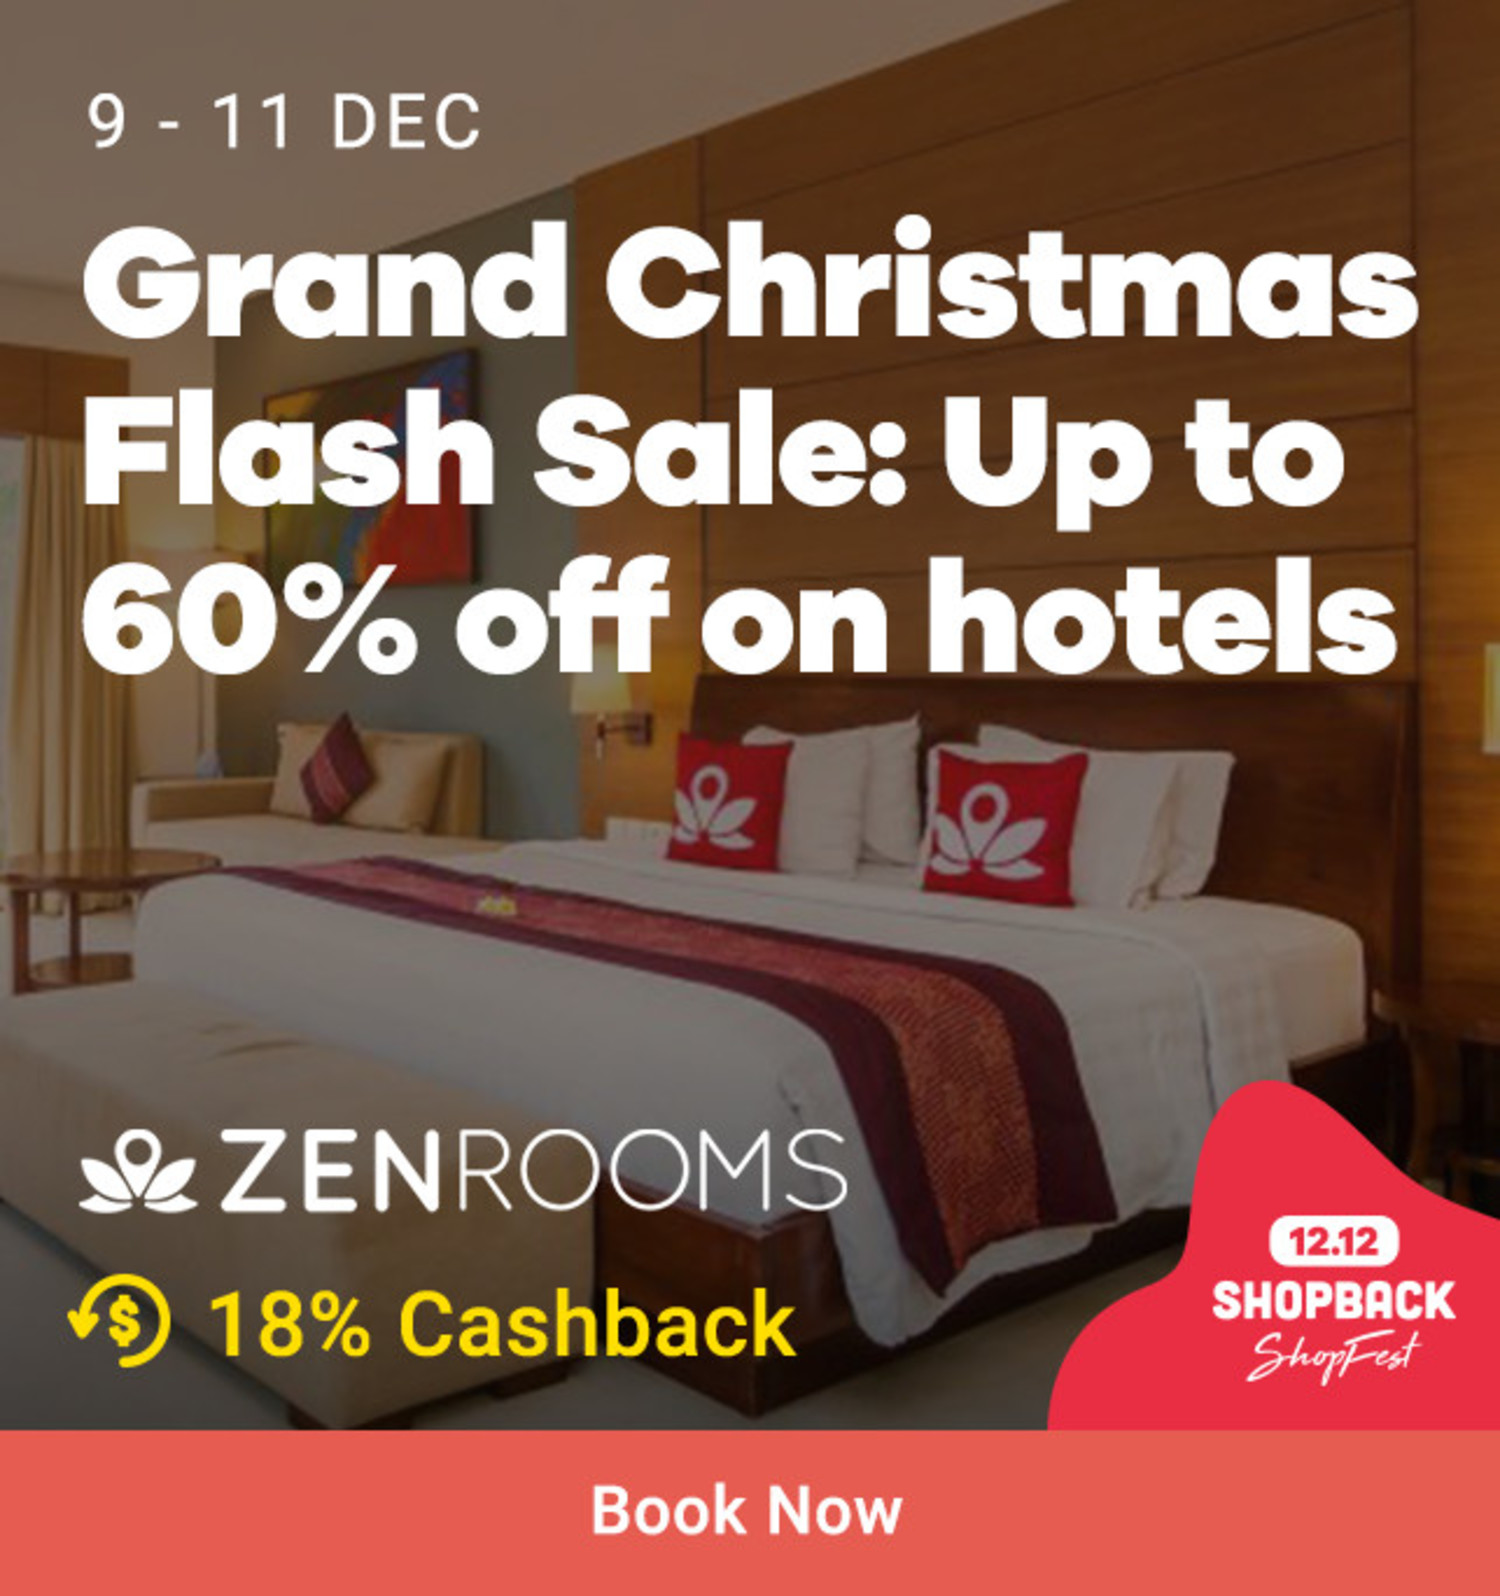 ZEN Rooms: Grand Christmas Flash Sale Up to 60% off on hotels